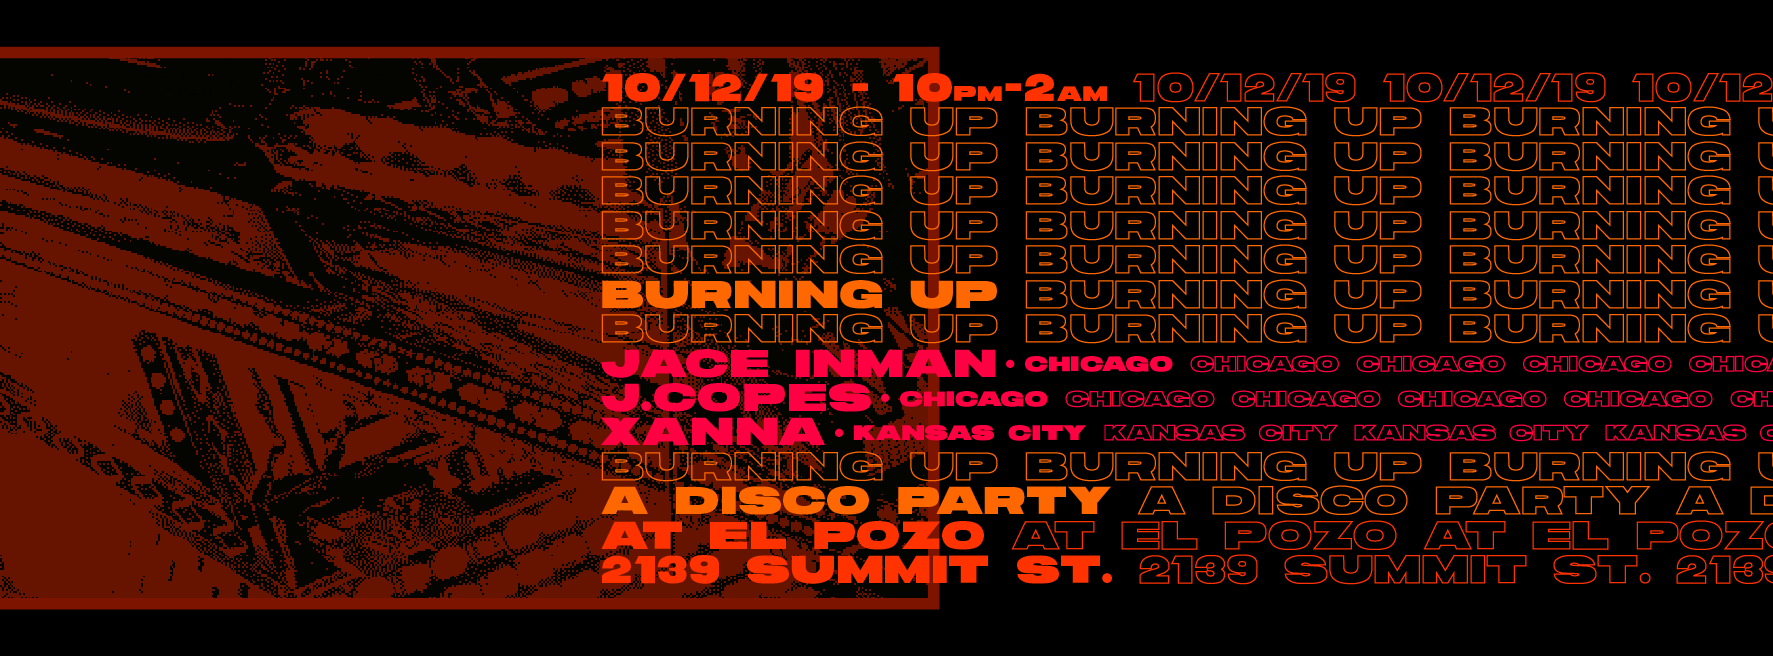 Burning Up Flyer - Cover Photo.png